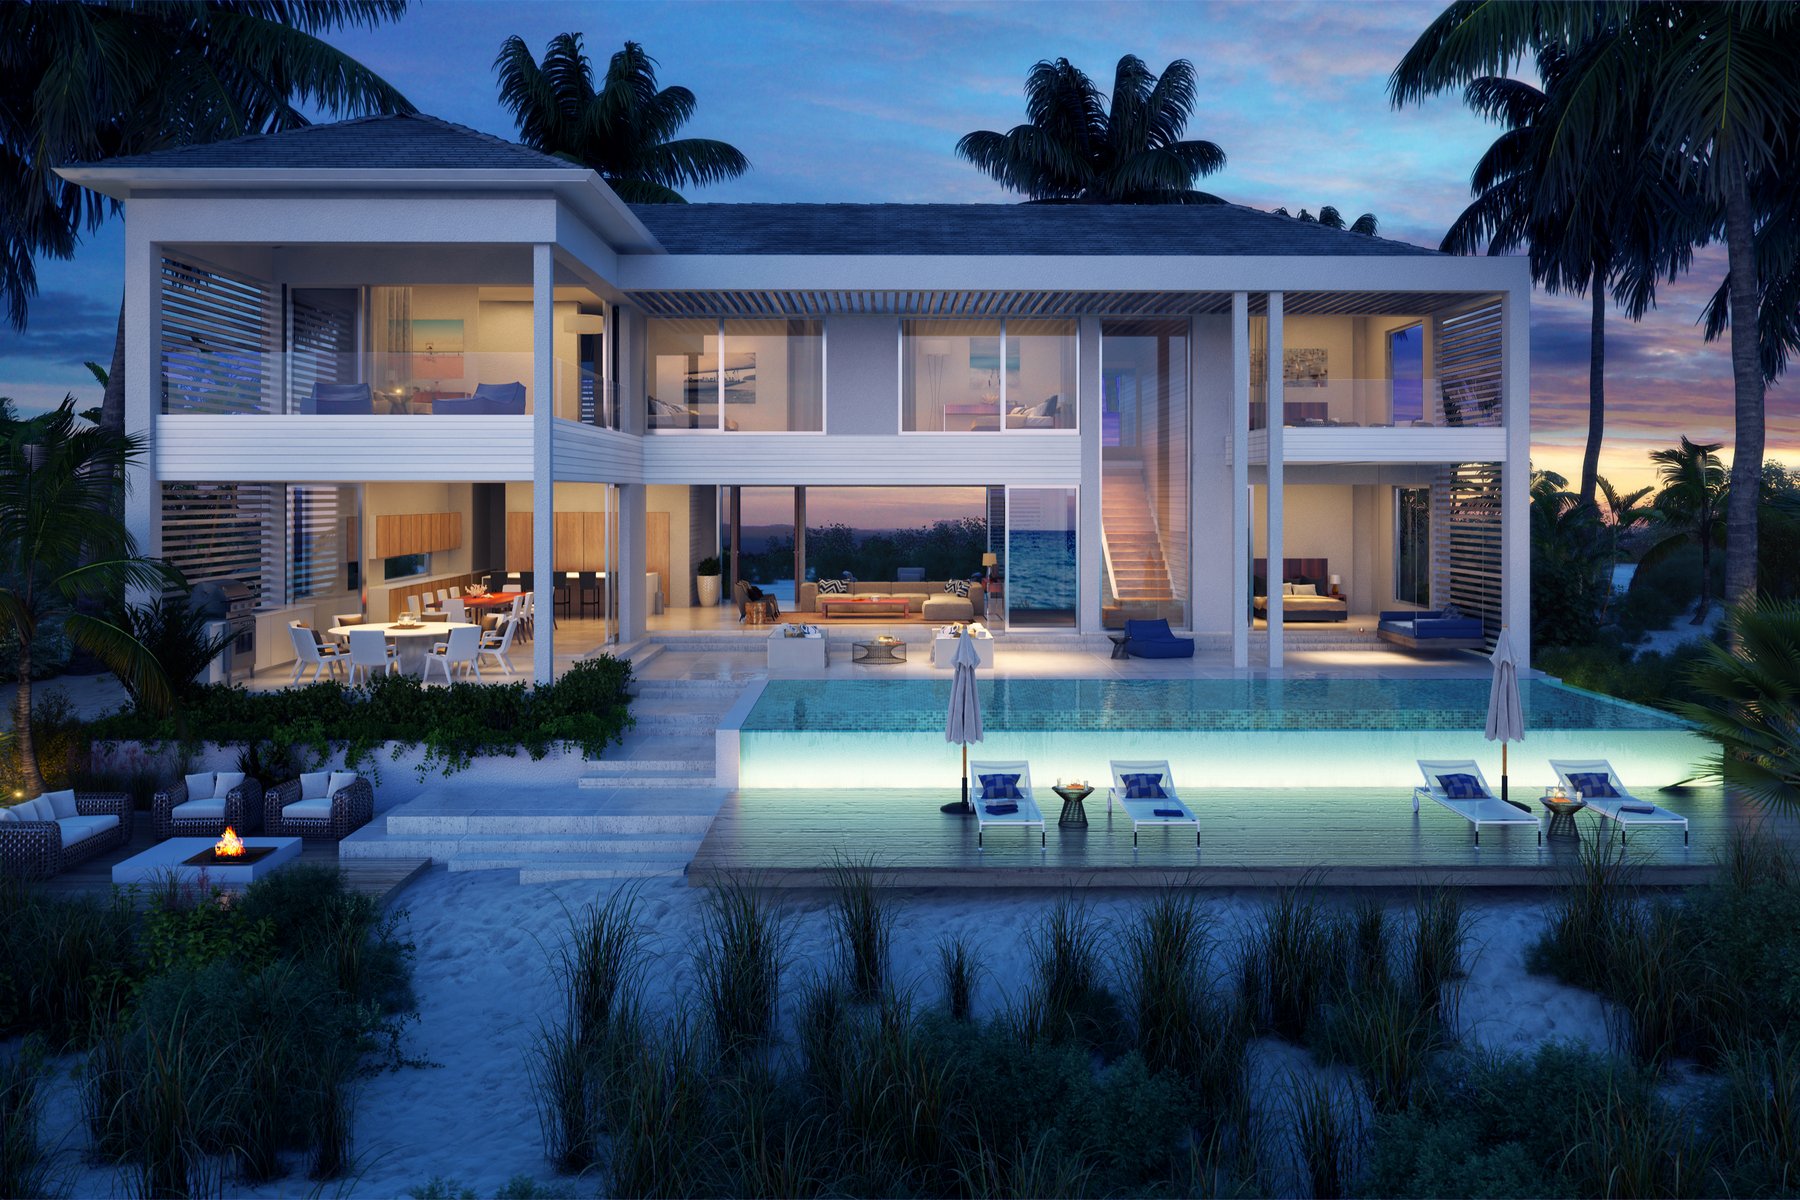 Single Family Home for Sale at BEACH ENCLAVE GRACE BAY Design B Beachfront Grace Bay, Providenciales, TCI Turks And Caicos Islands